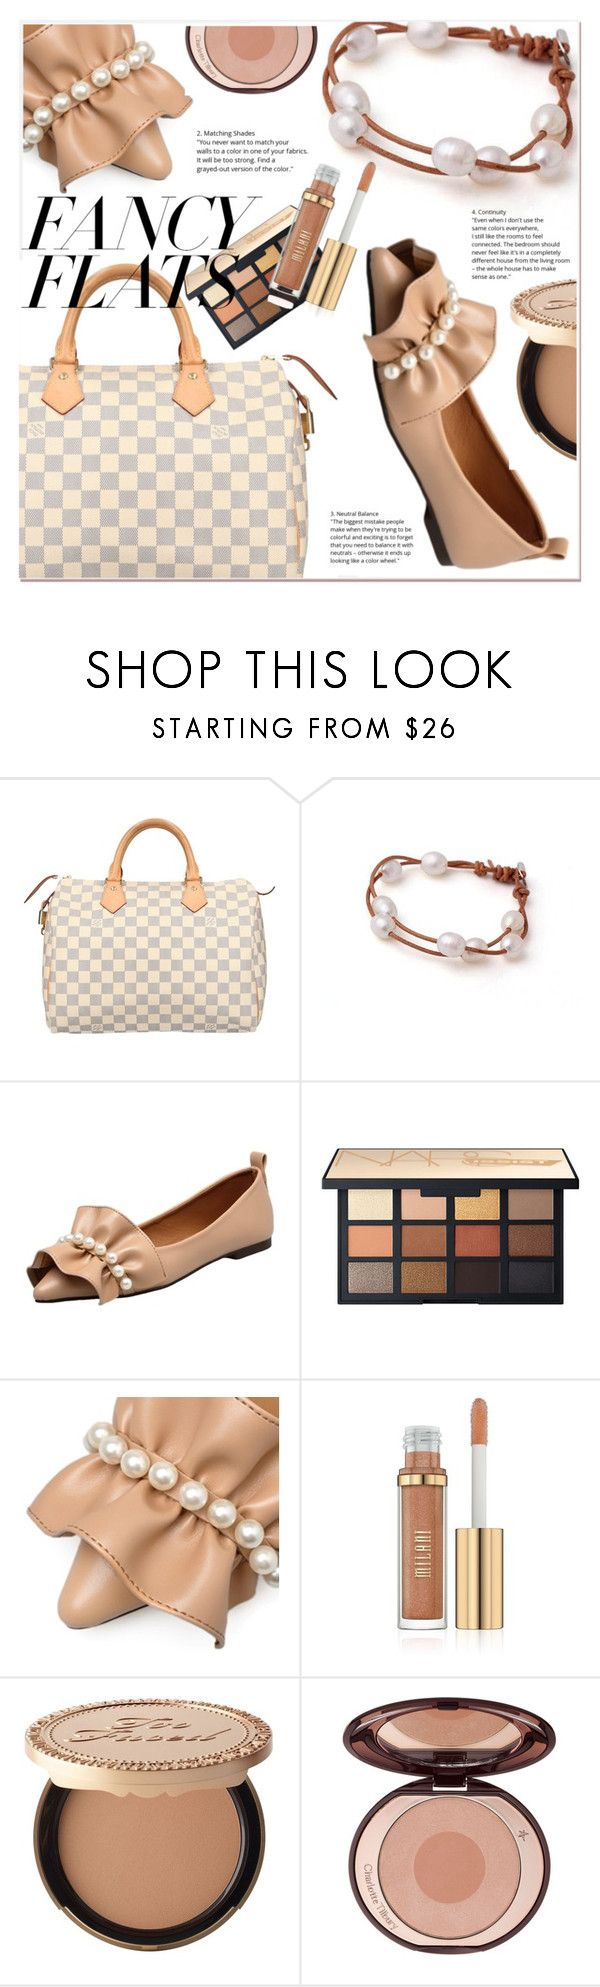 """""""Magic Slippers: Fancy Flats"""" by selmir ❤ liked on Polyvore featuring Louis Vuitton, Too Faced Cosmetics, items, polyvoreeditorial, polyvorefashion, polyvoreset and chicflats"""